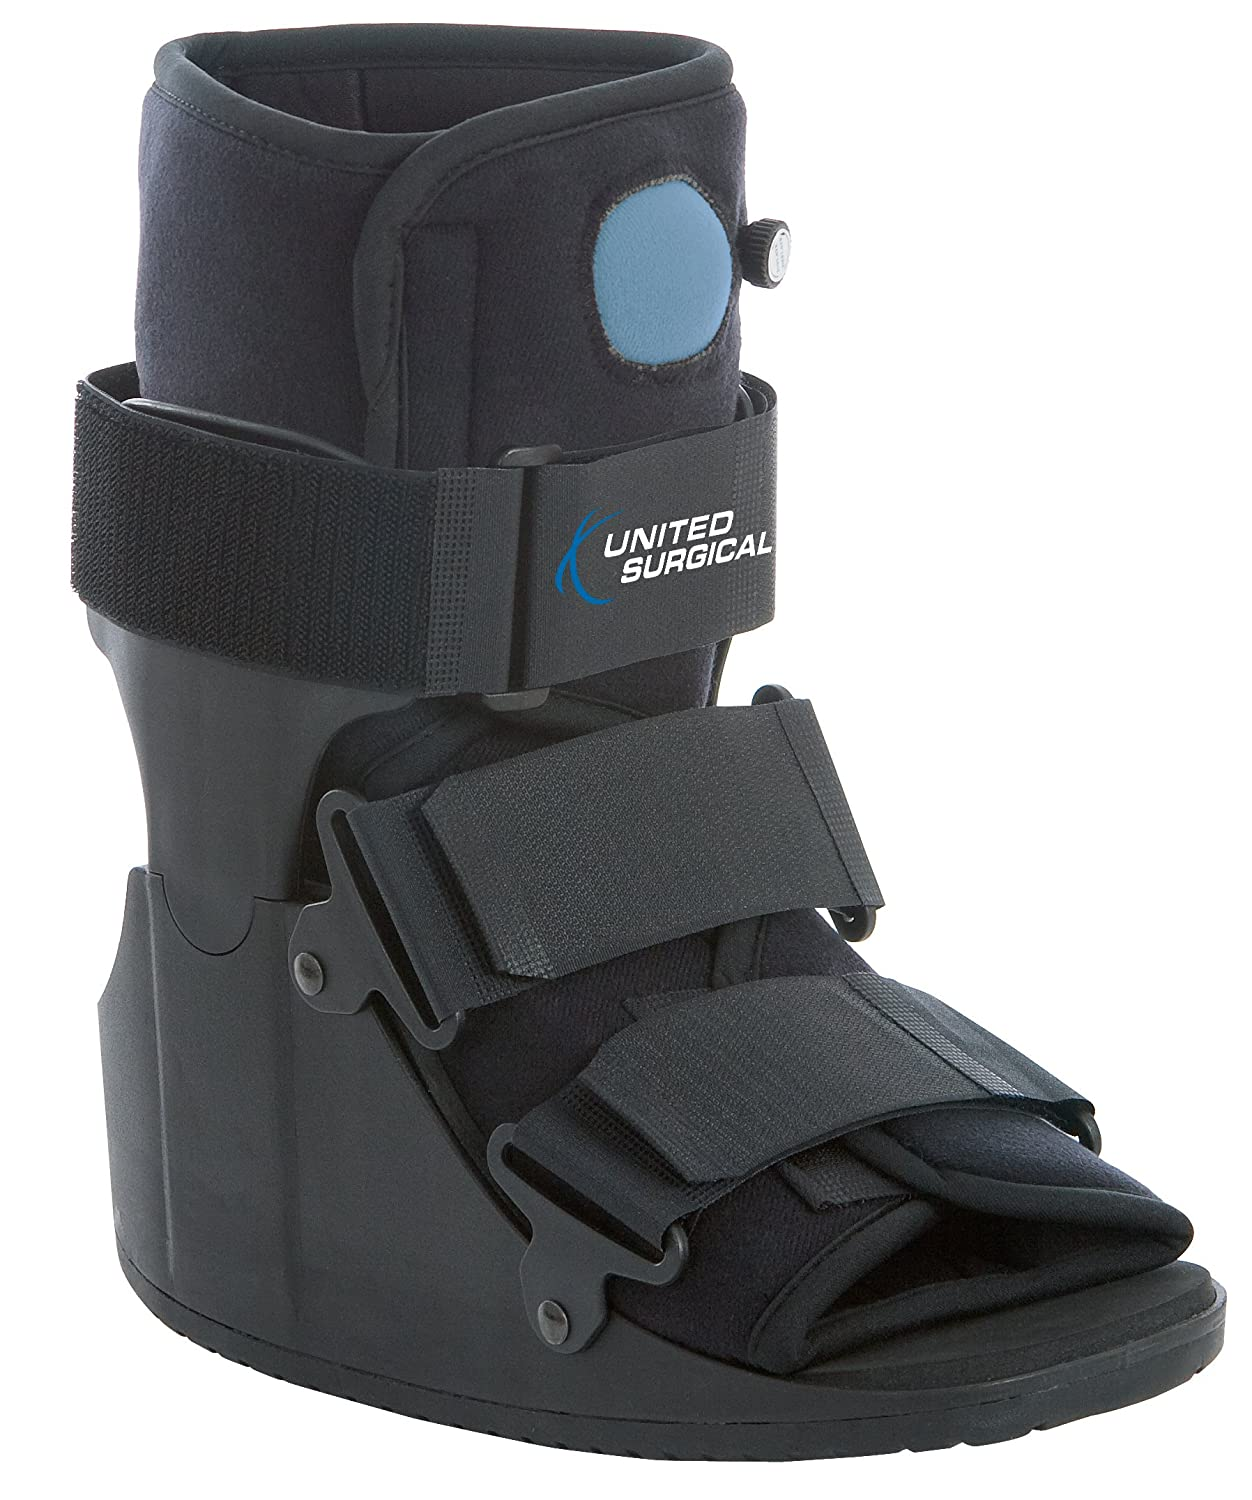 Closed toe medical walking shoe foot protection boot - Amazon Com United Surgical Short Air Cam Walker Fracture Boot Medium Health Personal Care